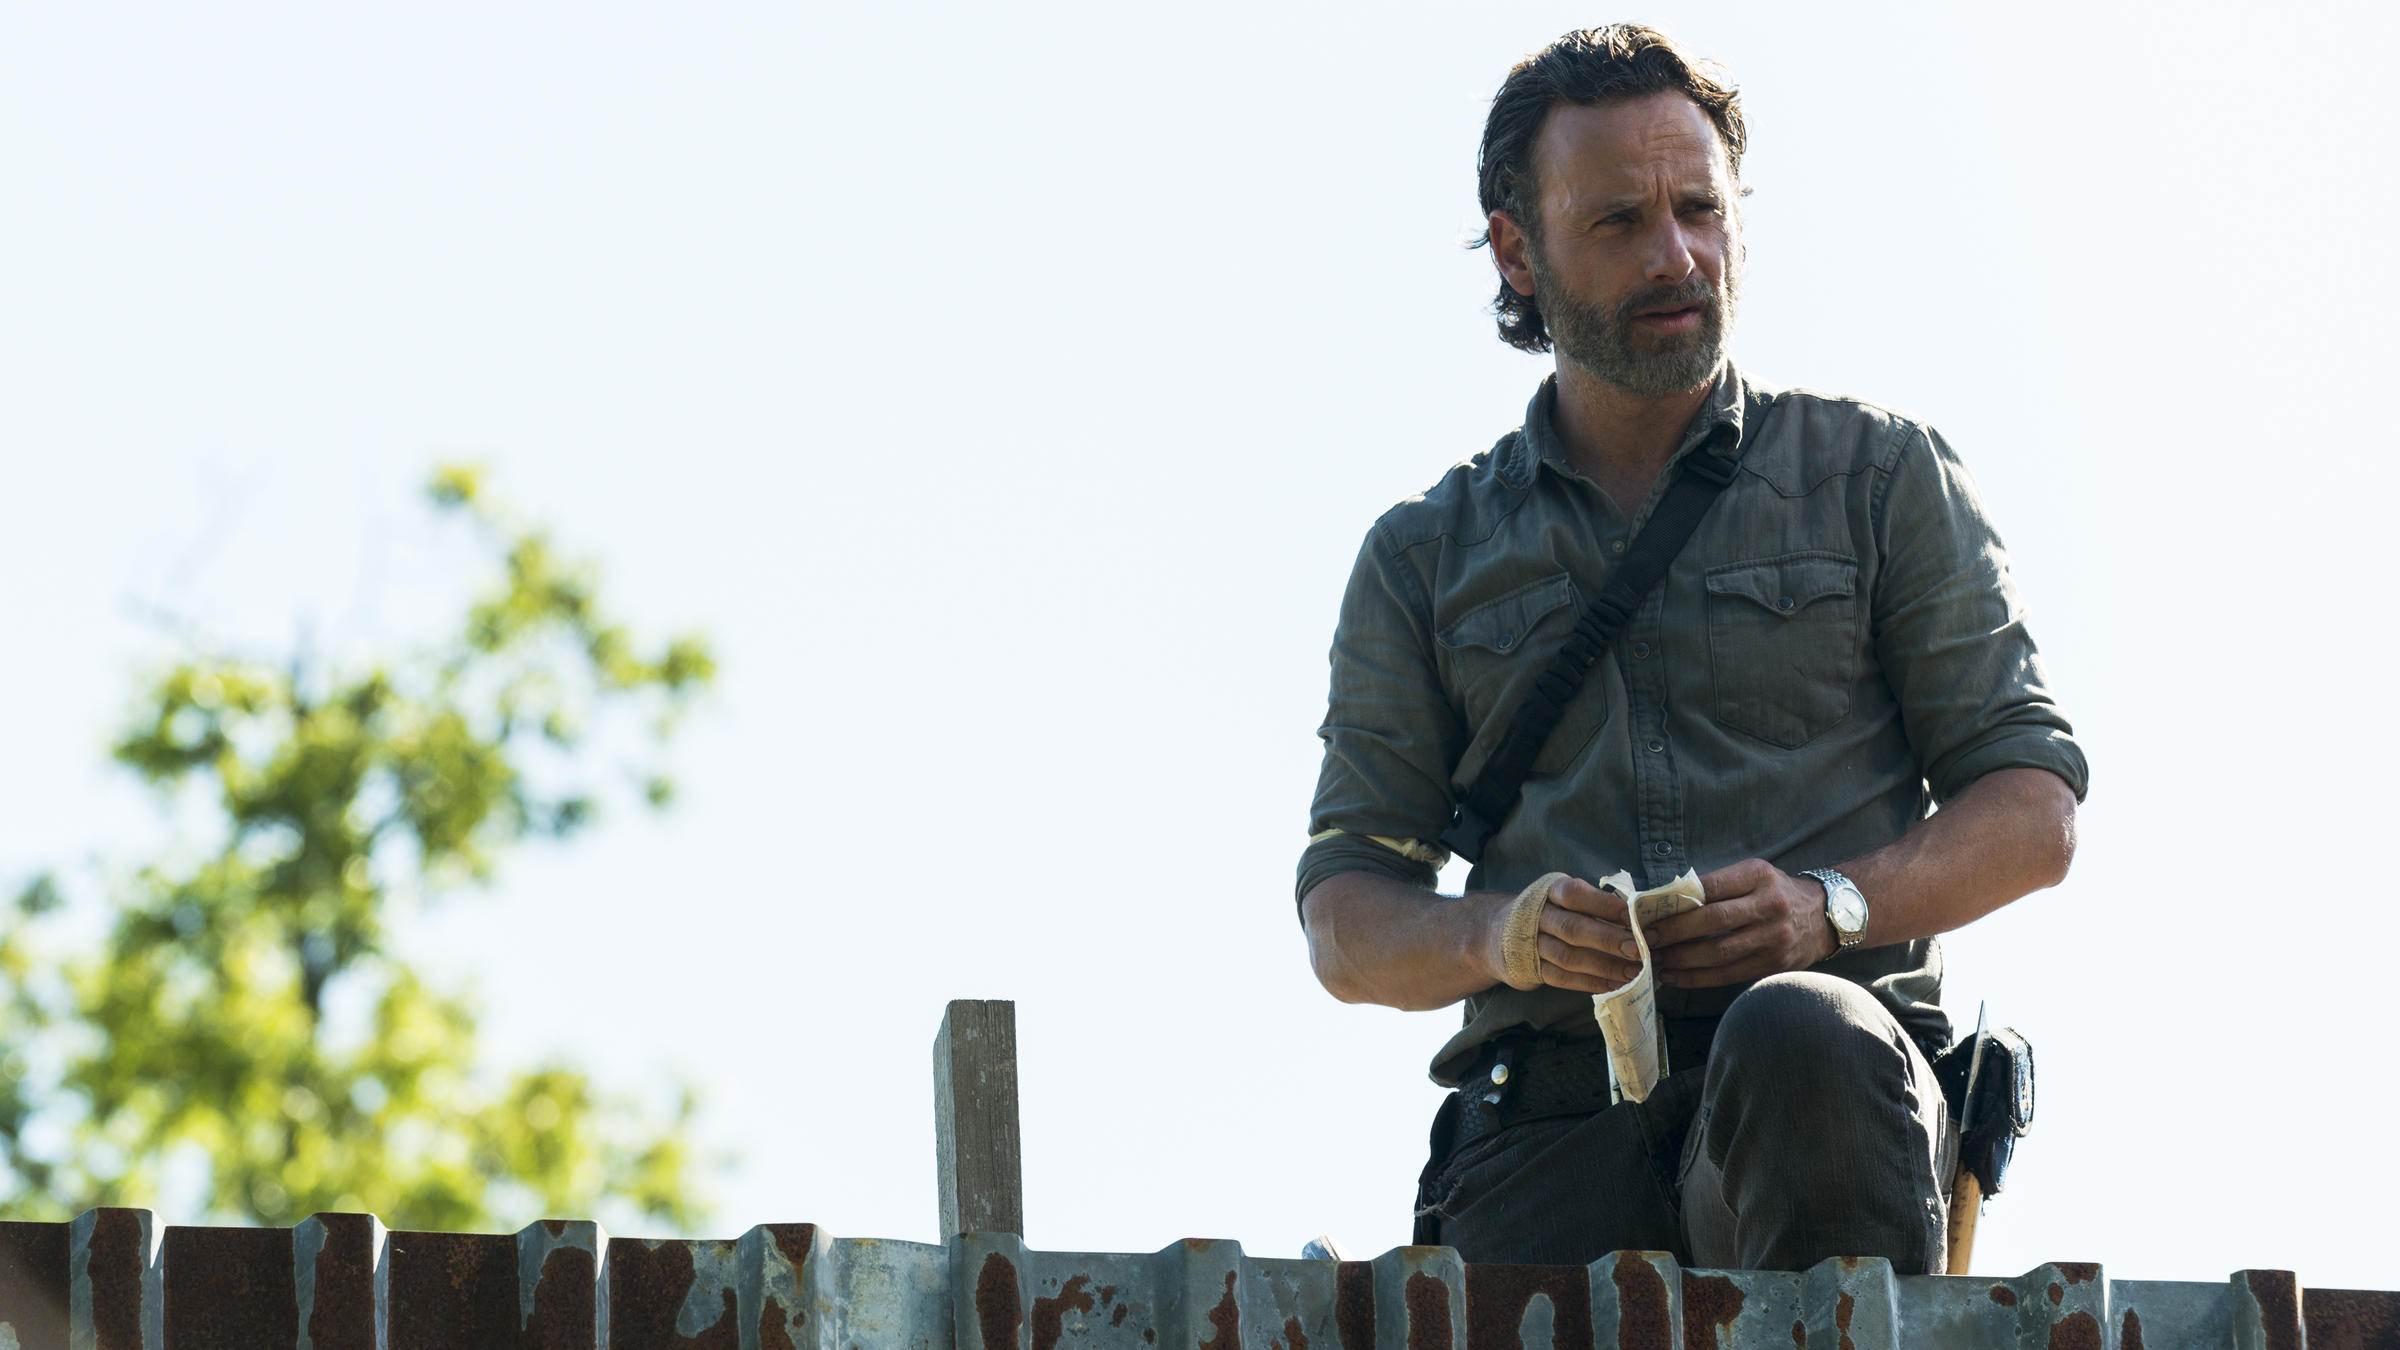 who plays rick grimes in the walking dead